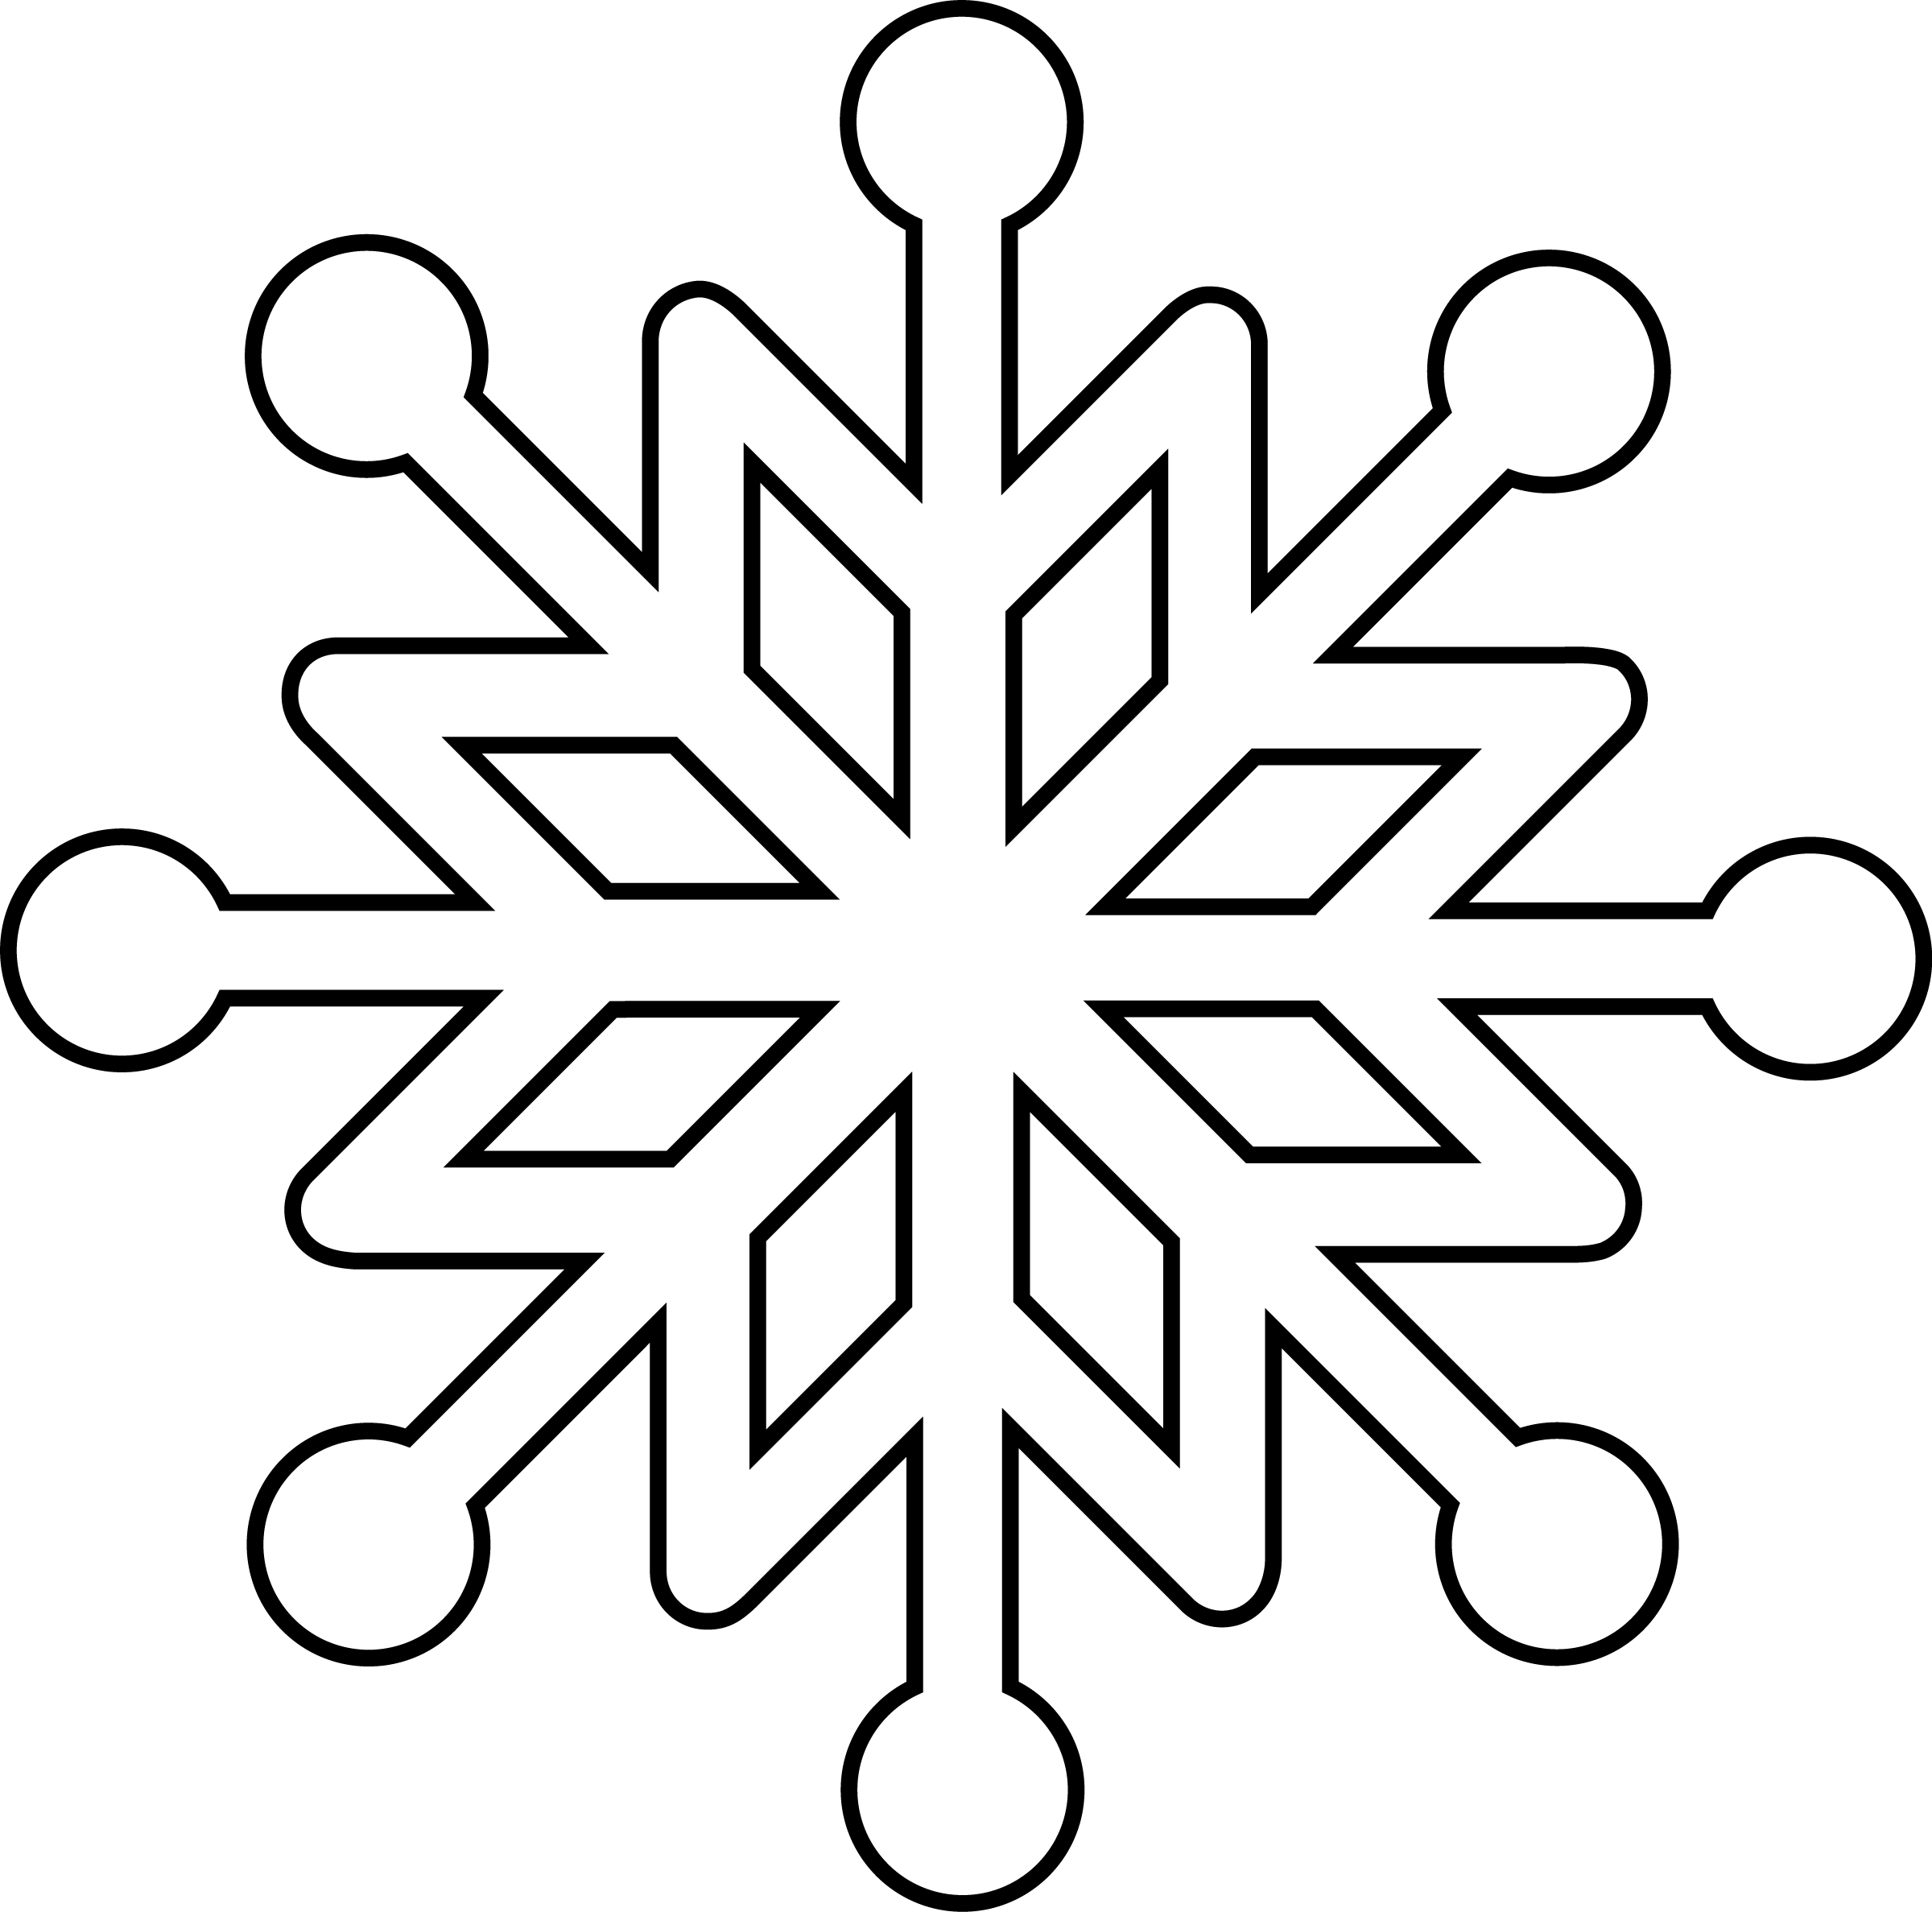 Snowflake Coloring Page At Getdrawings Com Free For Personal Use